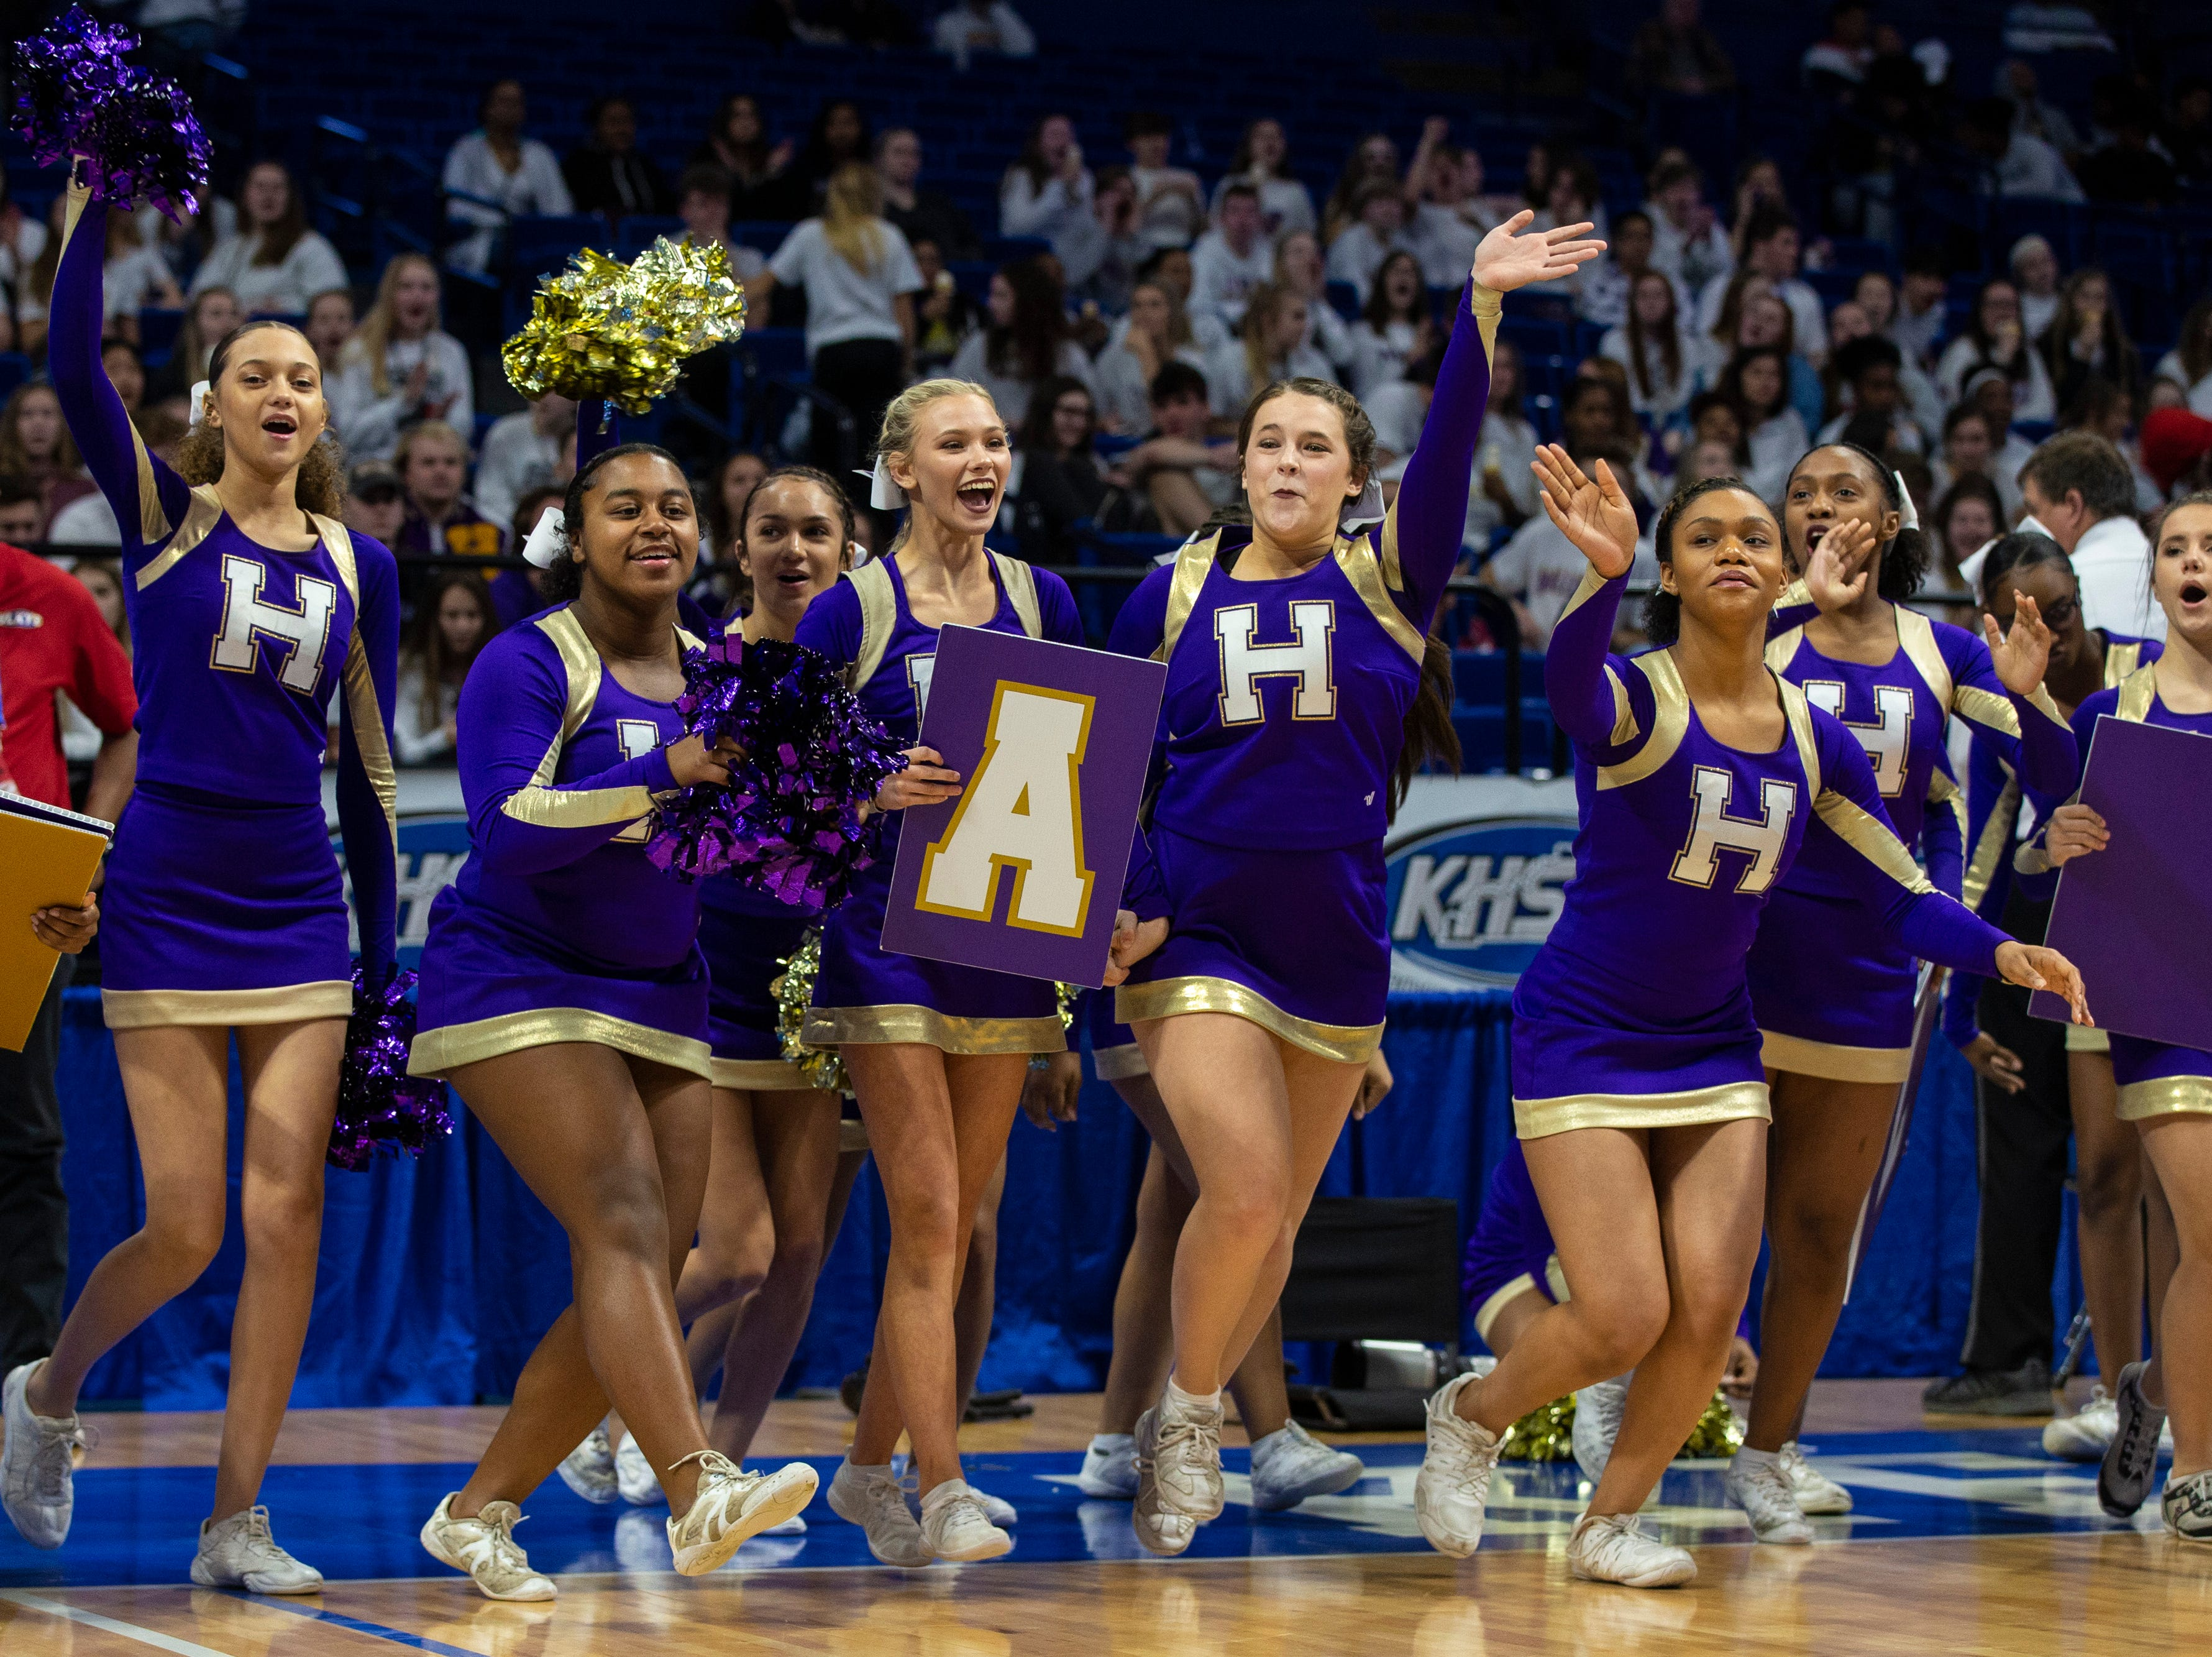 Male cheerleaders perform during halftime as Boyd County took on Louisville Male in the KHSAA state basketball tournament in Rupp Arena. Male eliminated Boyd County 74-56. March 14, 2019